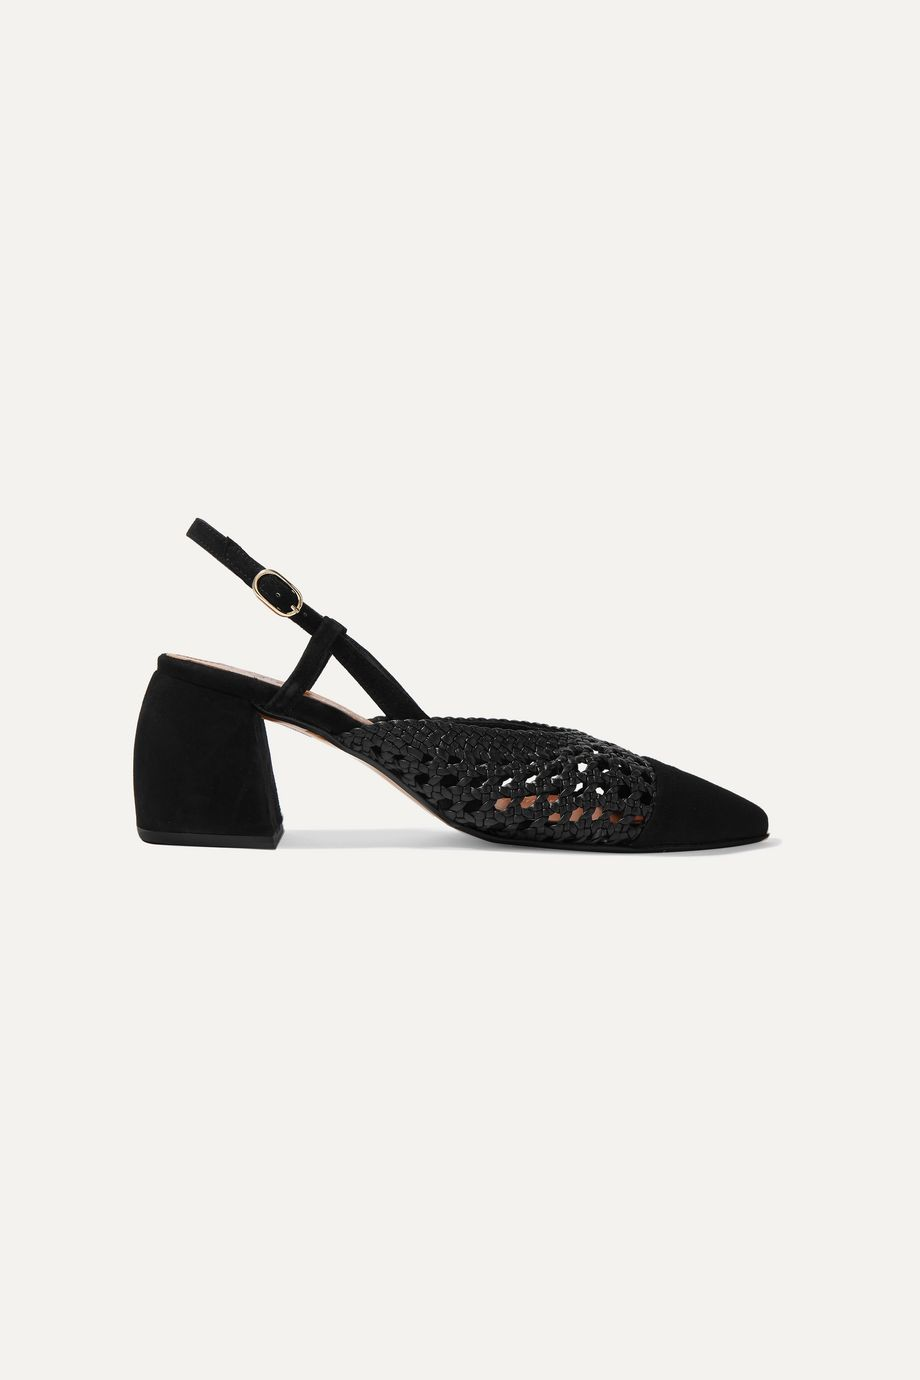 Souliers Martinez Tenerife suede and woven leather slingback pumps